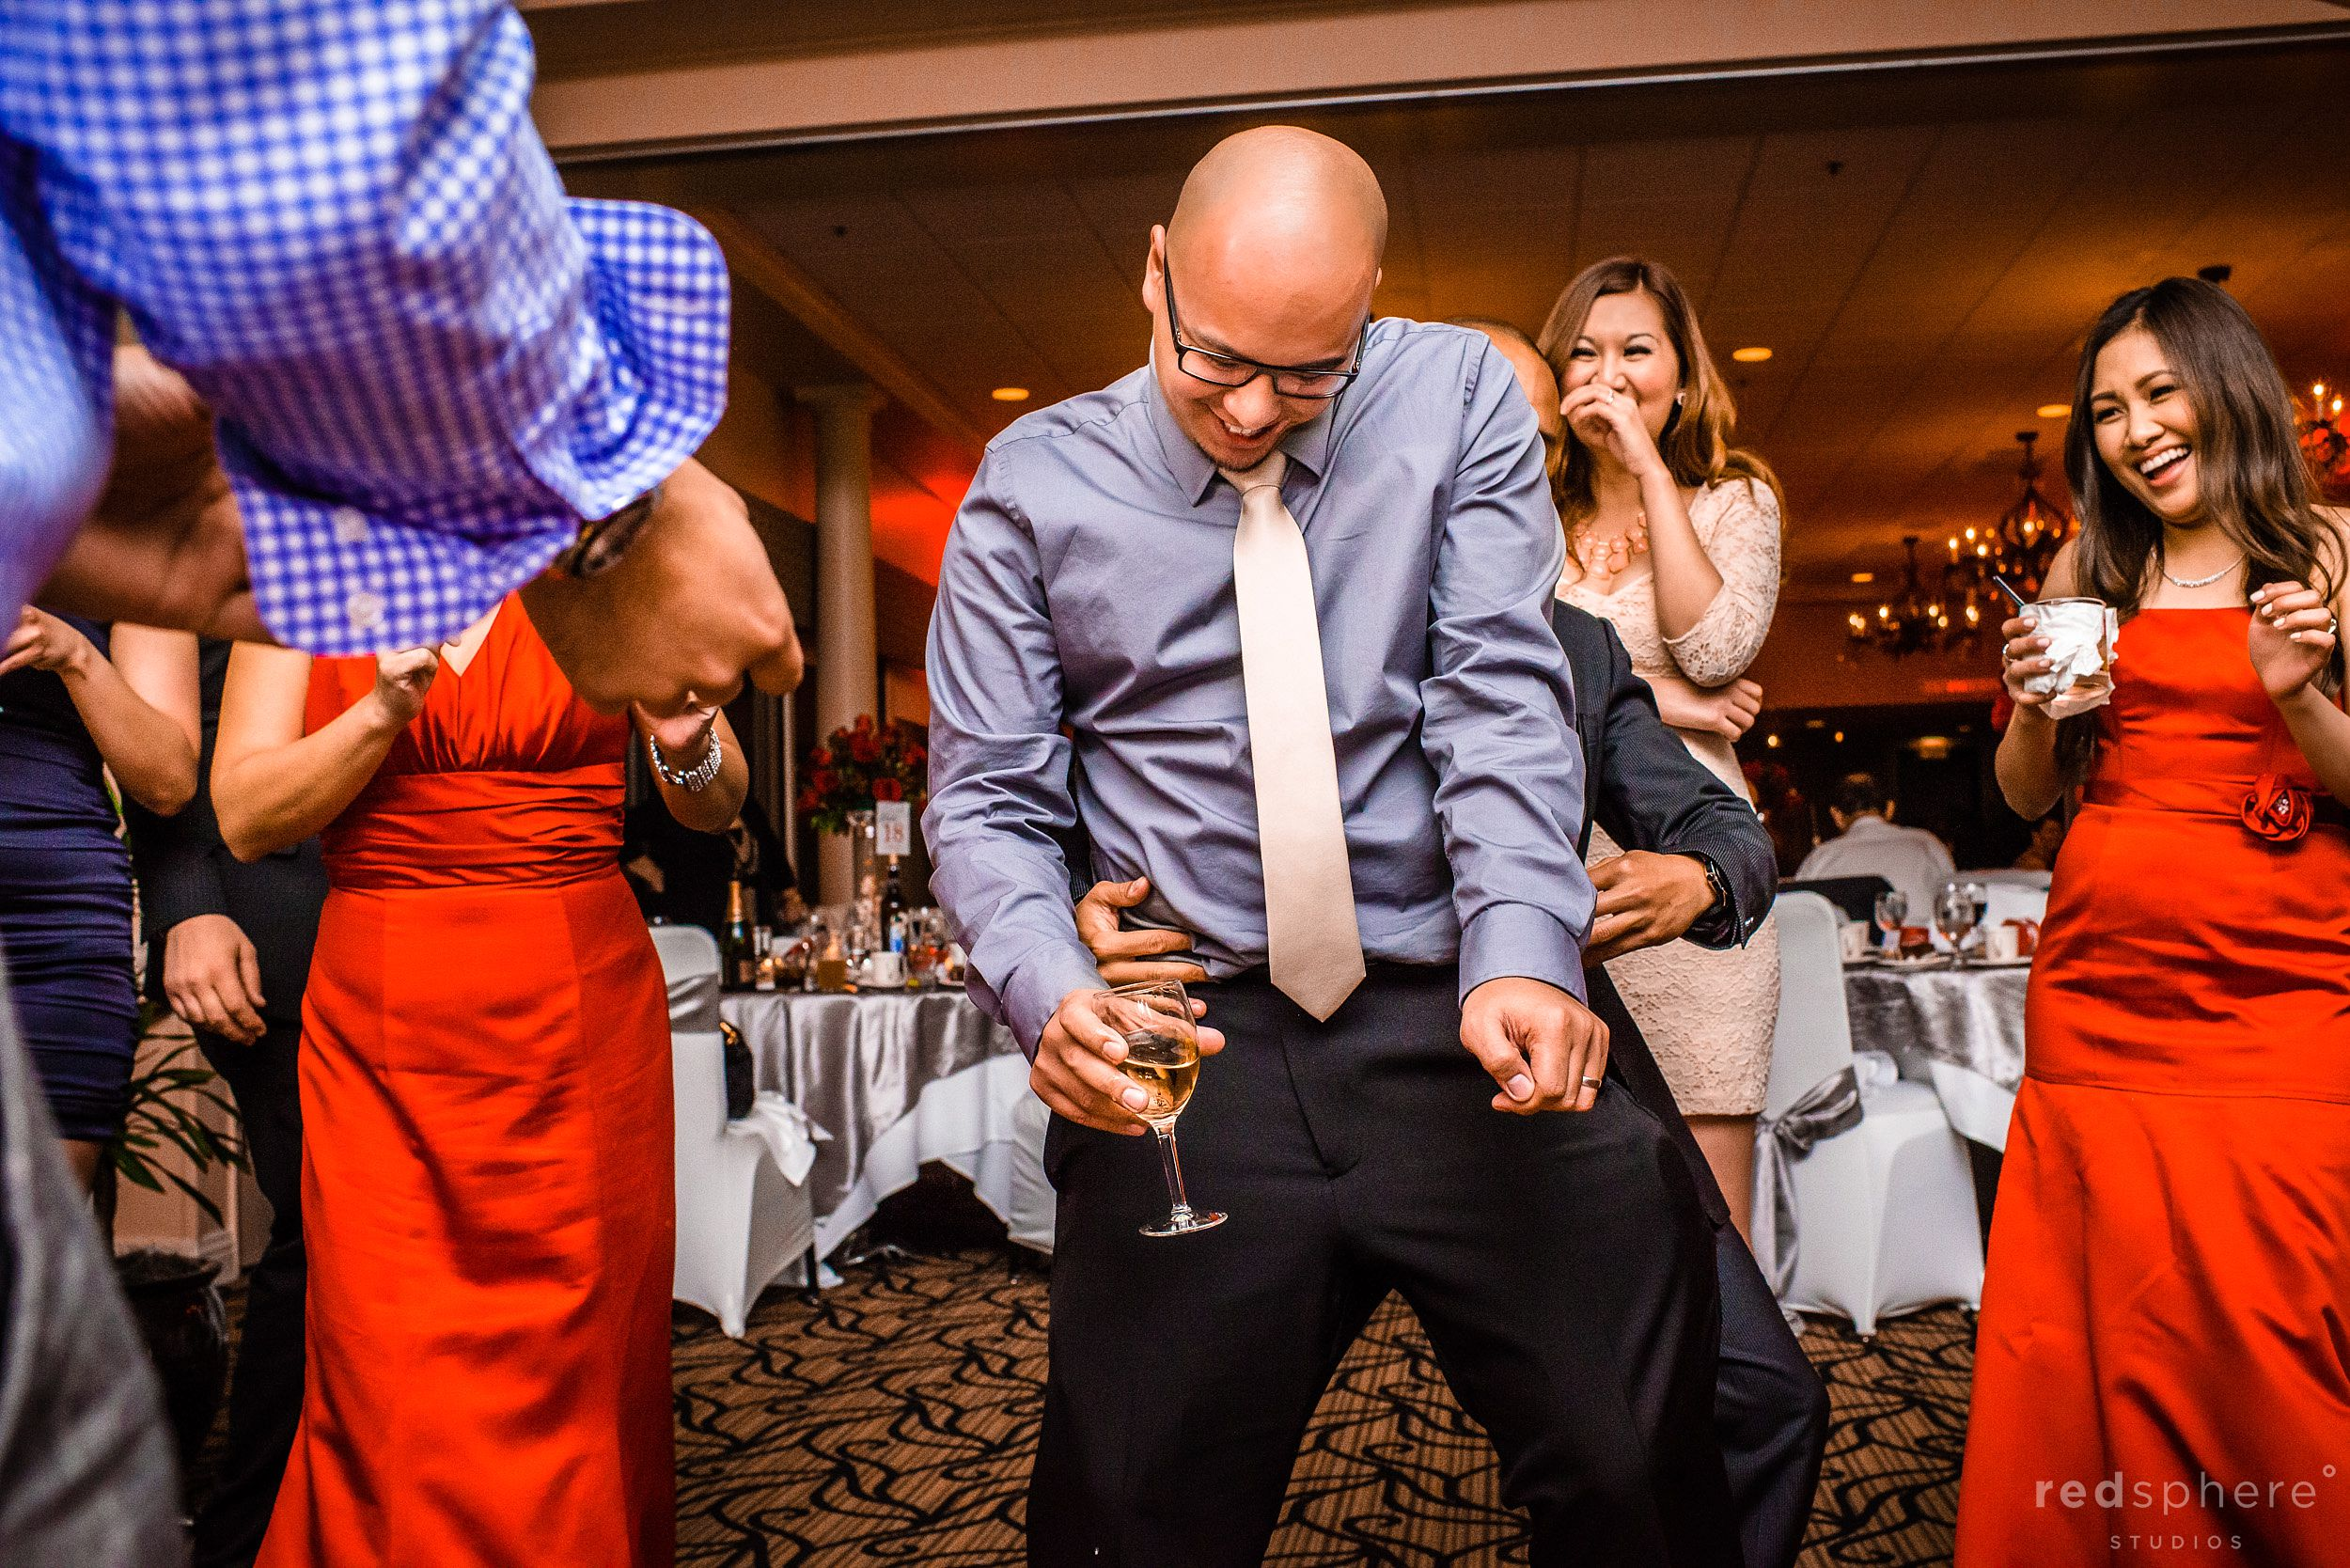 Wedding Guests Dancing With Champagne In Hands